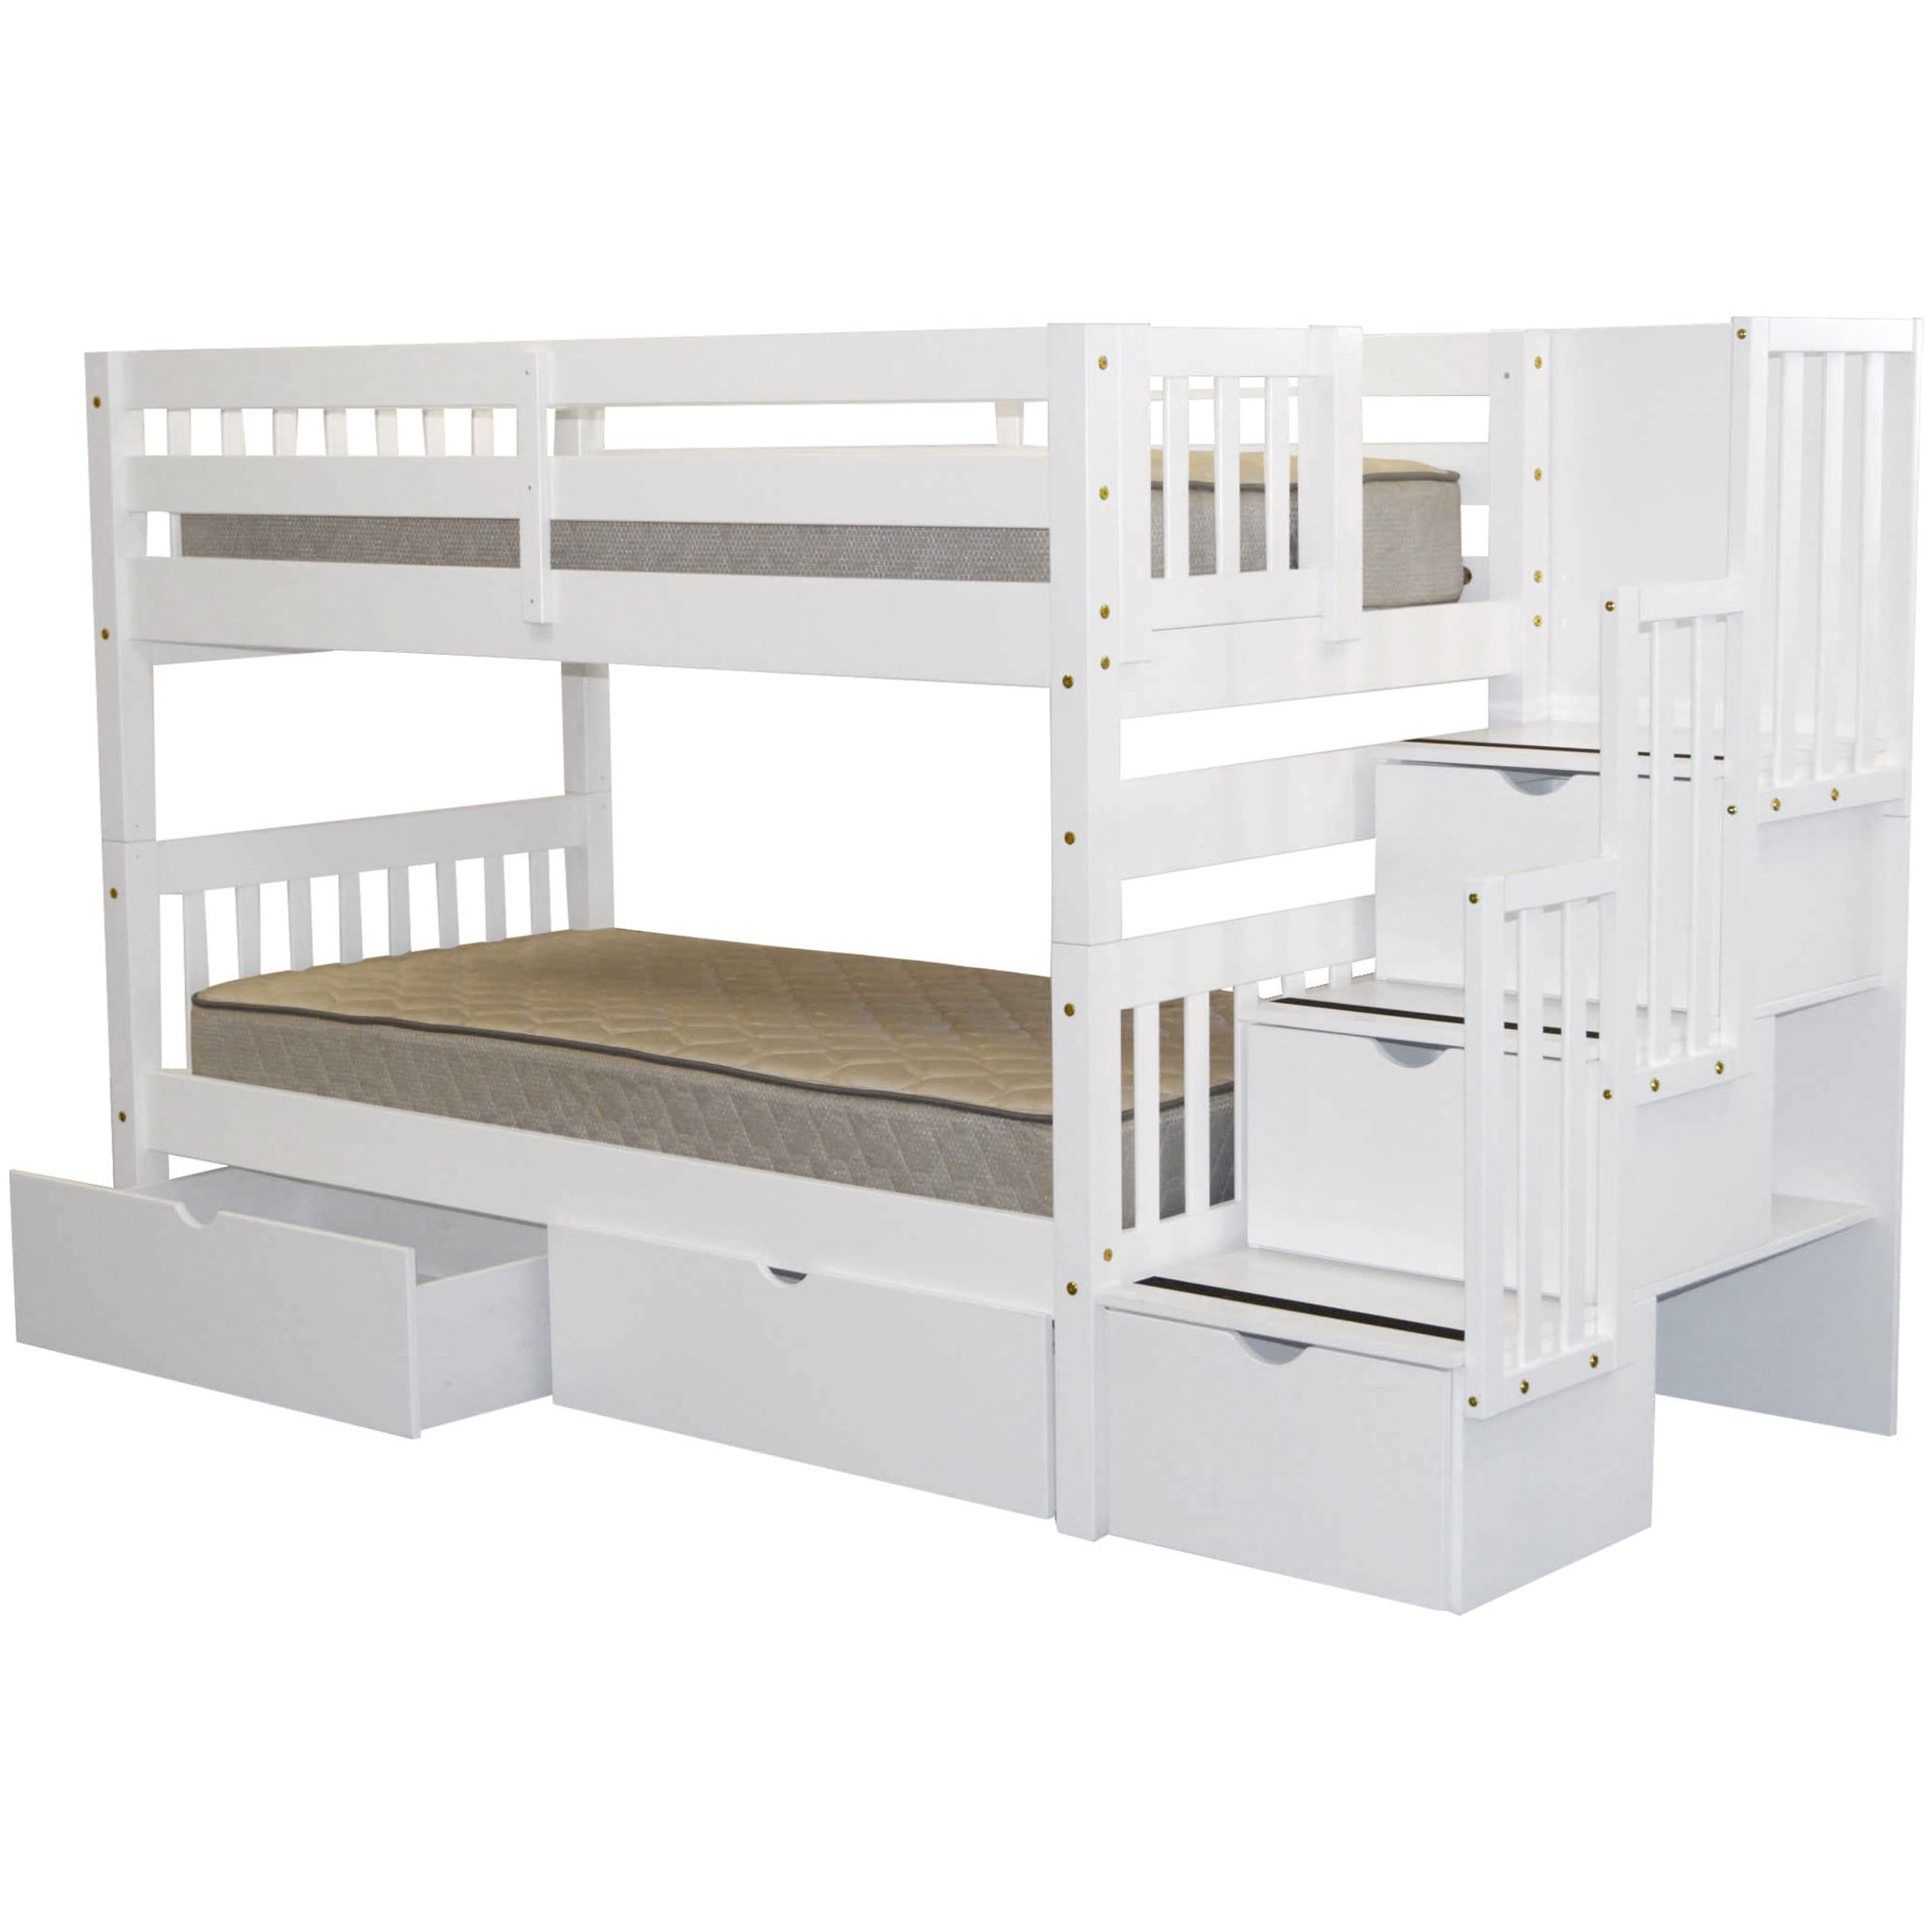 Shop Bedz King Stairway Bunk Bed Twin over Twin with 3 Drawers in ...